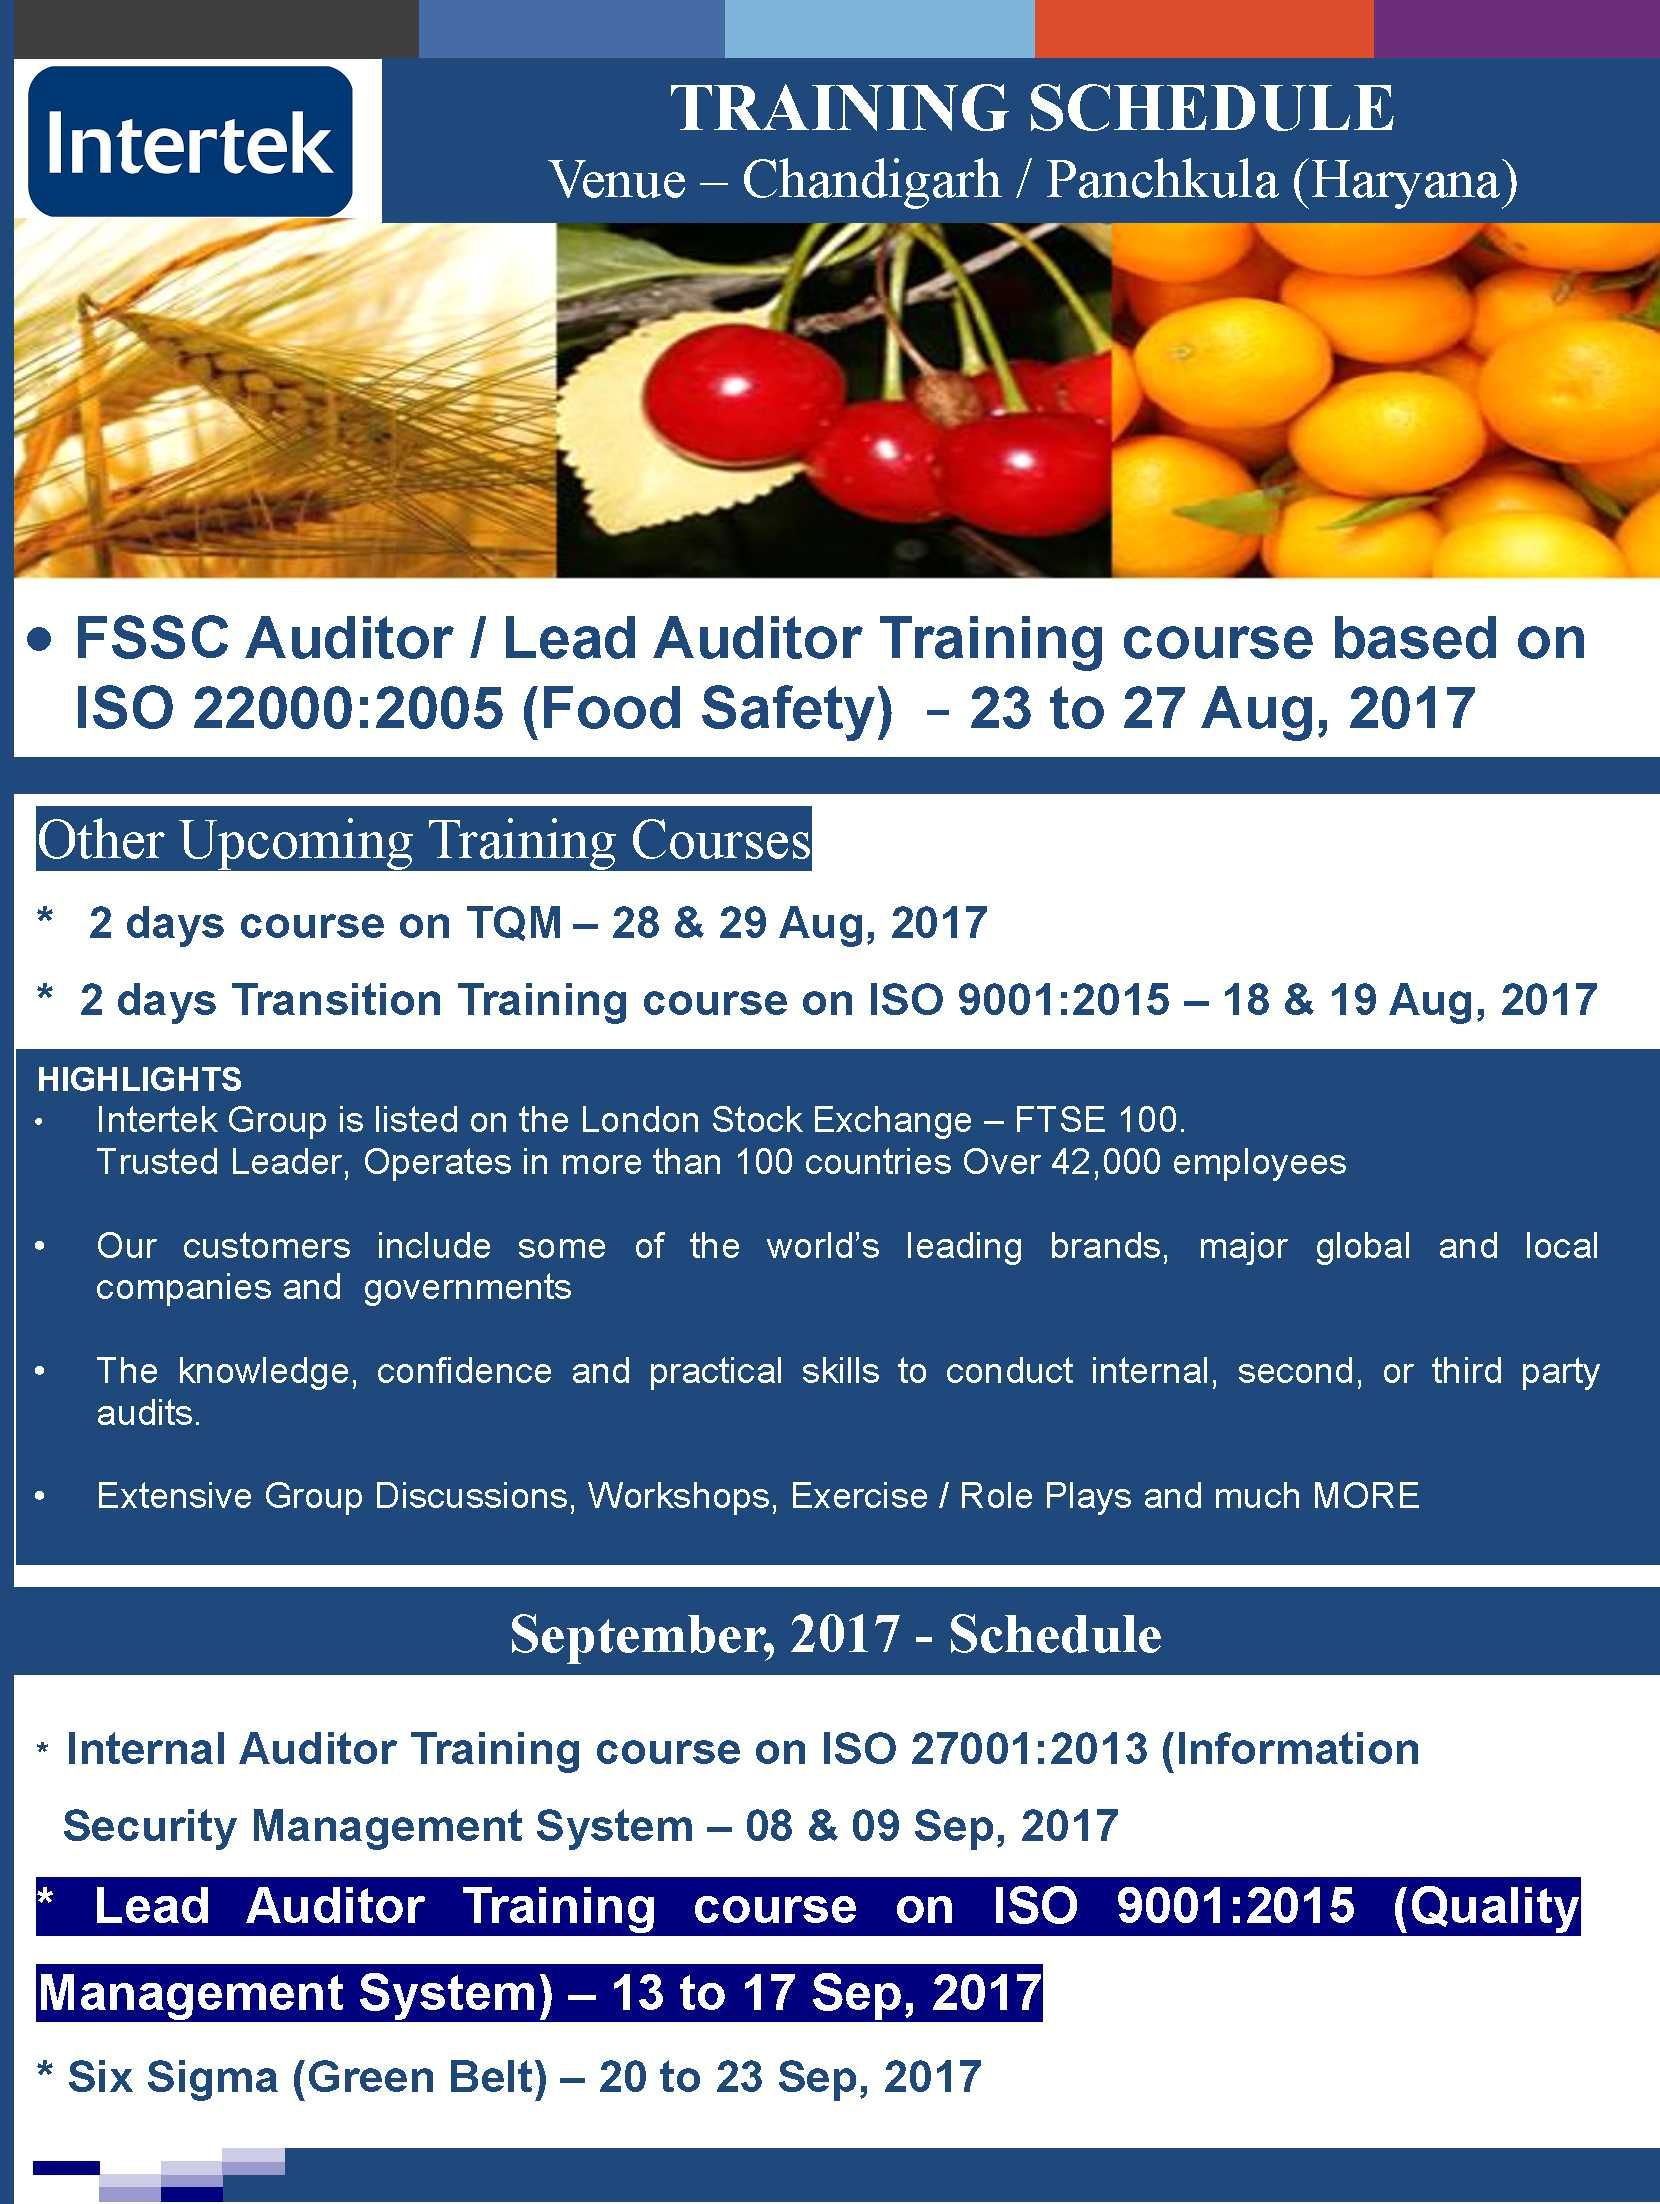 FSSC 22000 Lead Auditor Training course based on ISO 22000